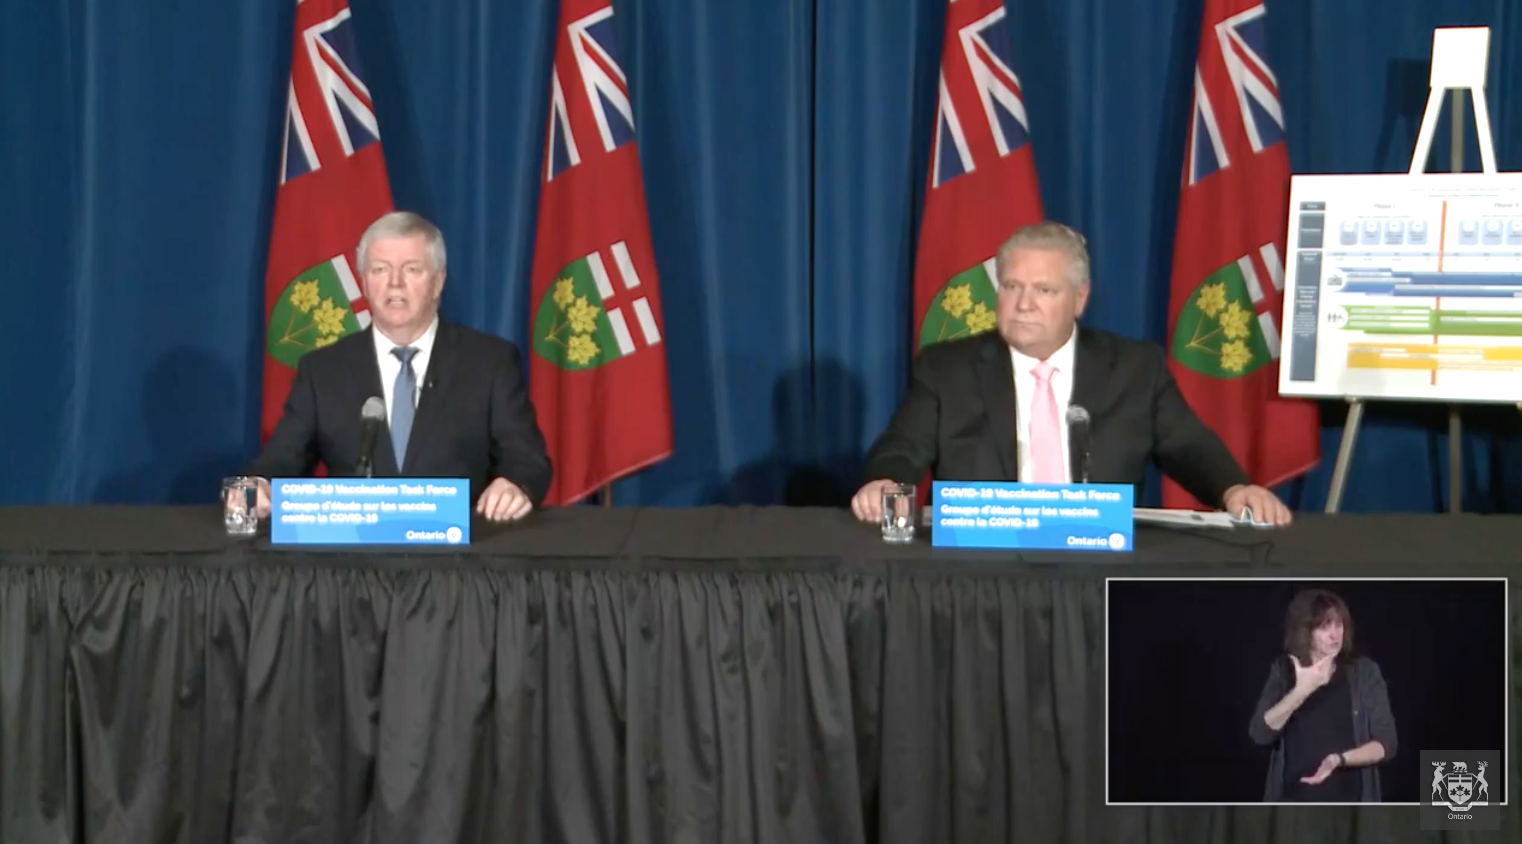 Ontario government sets goal to vaccinate all long-term care residents and staff by Feb. 15